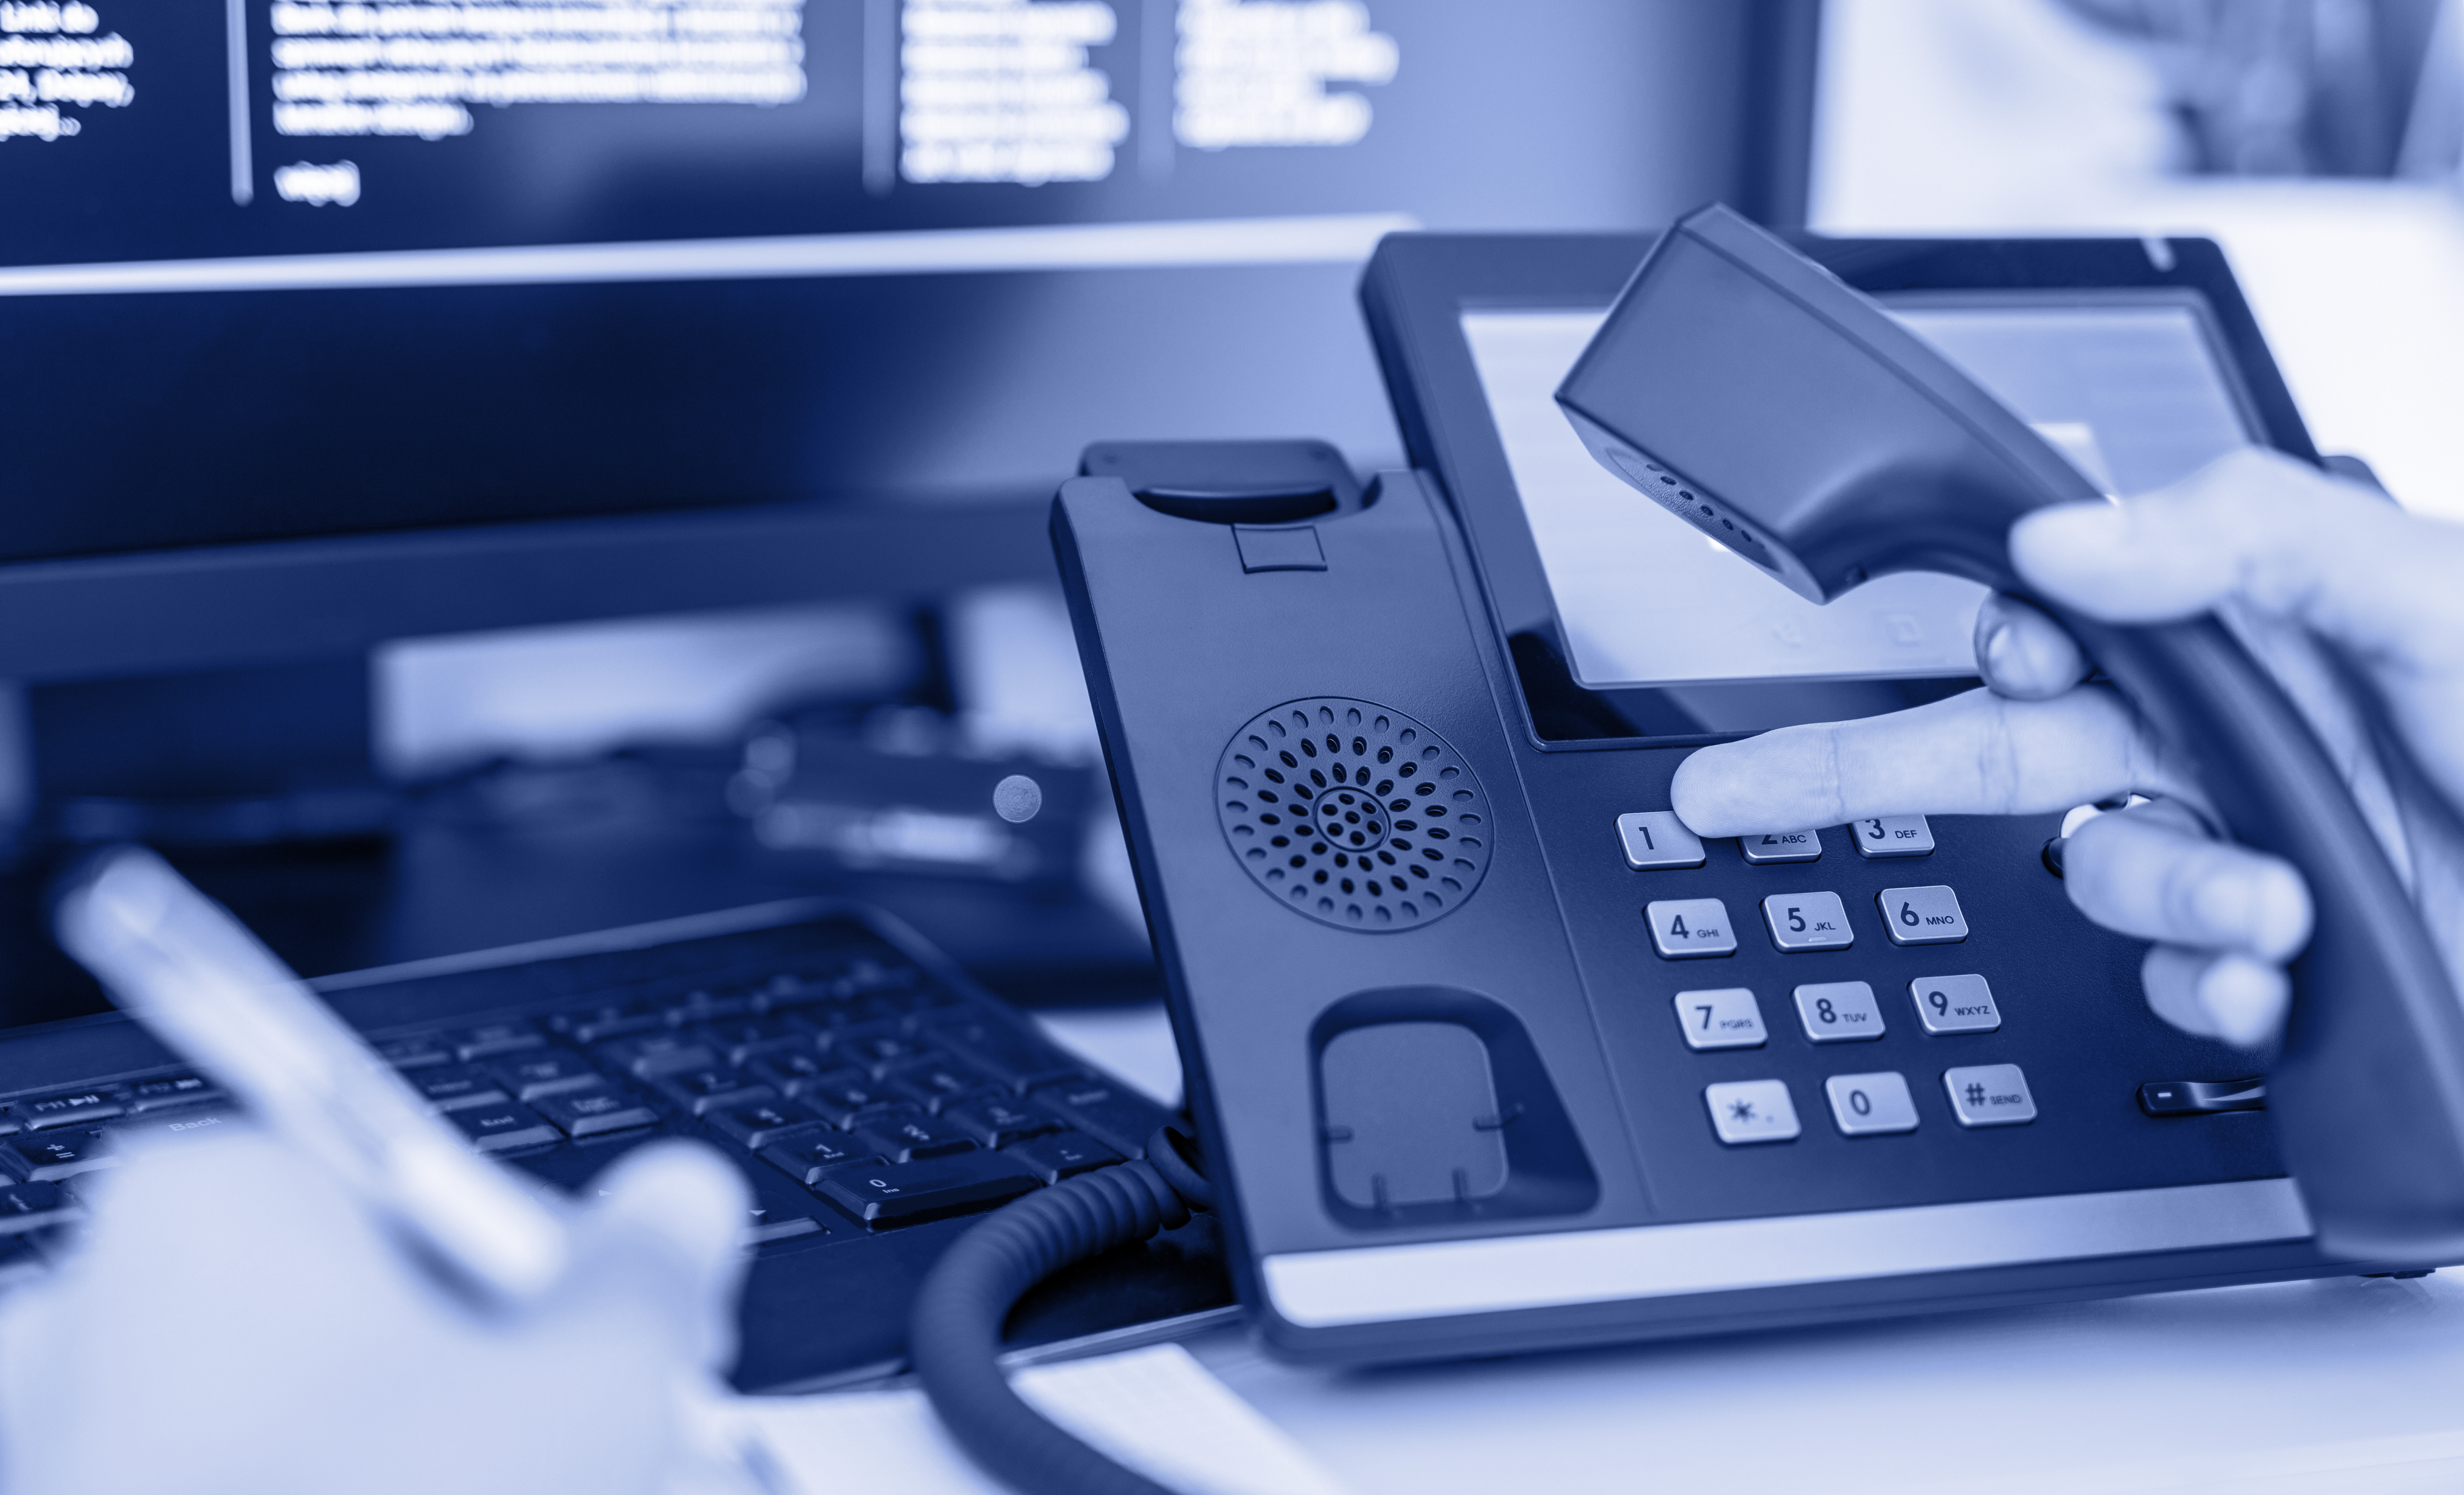 A hand dials on a telephone console, contacting Intersys for IT training services.